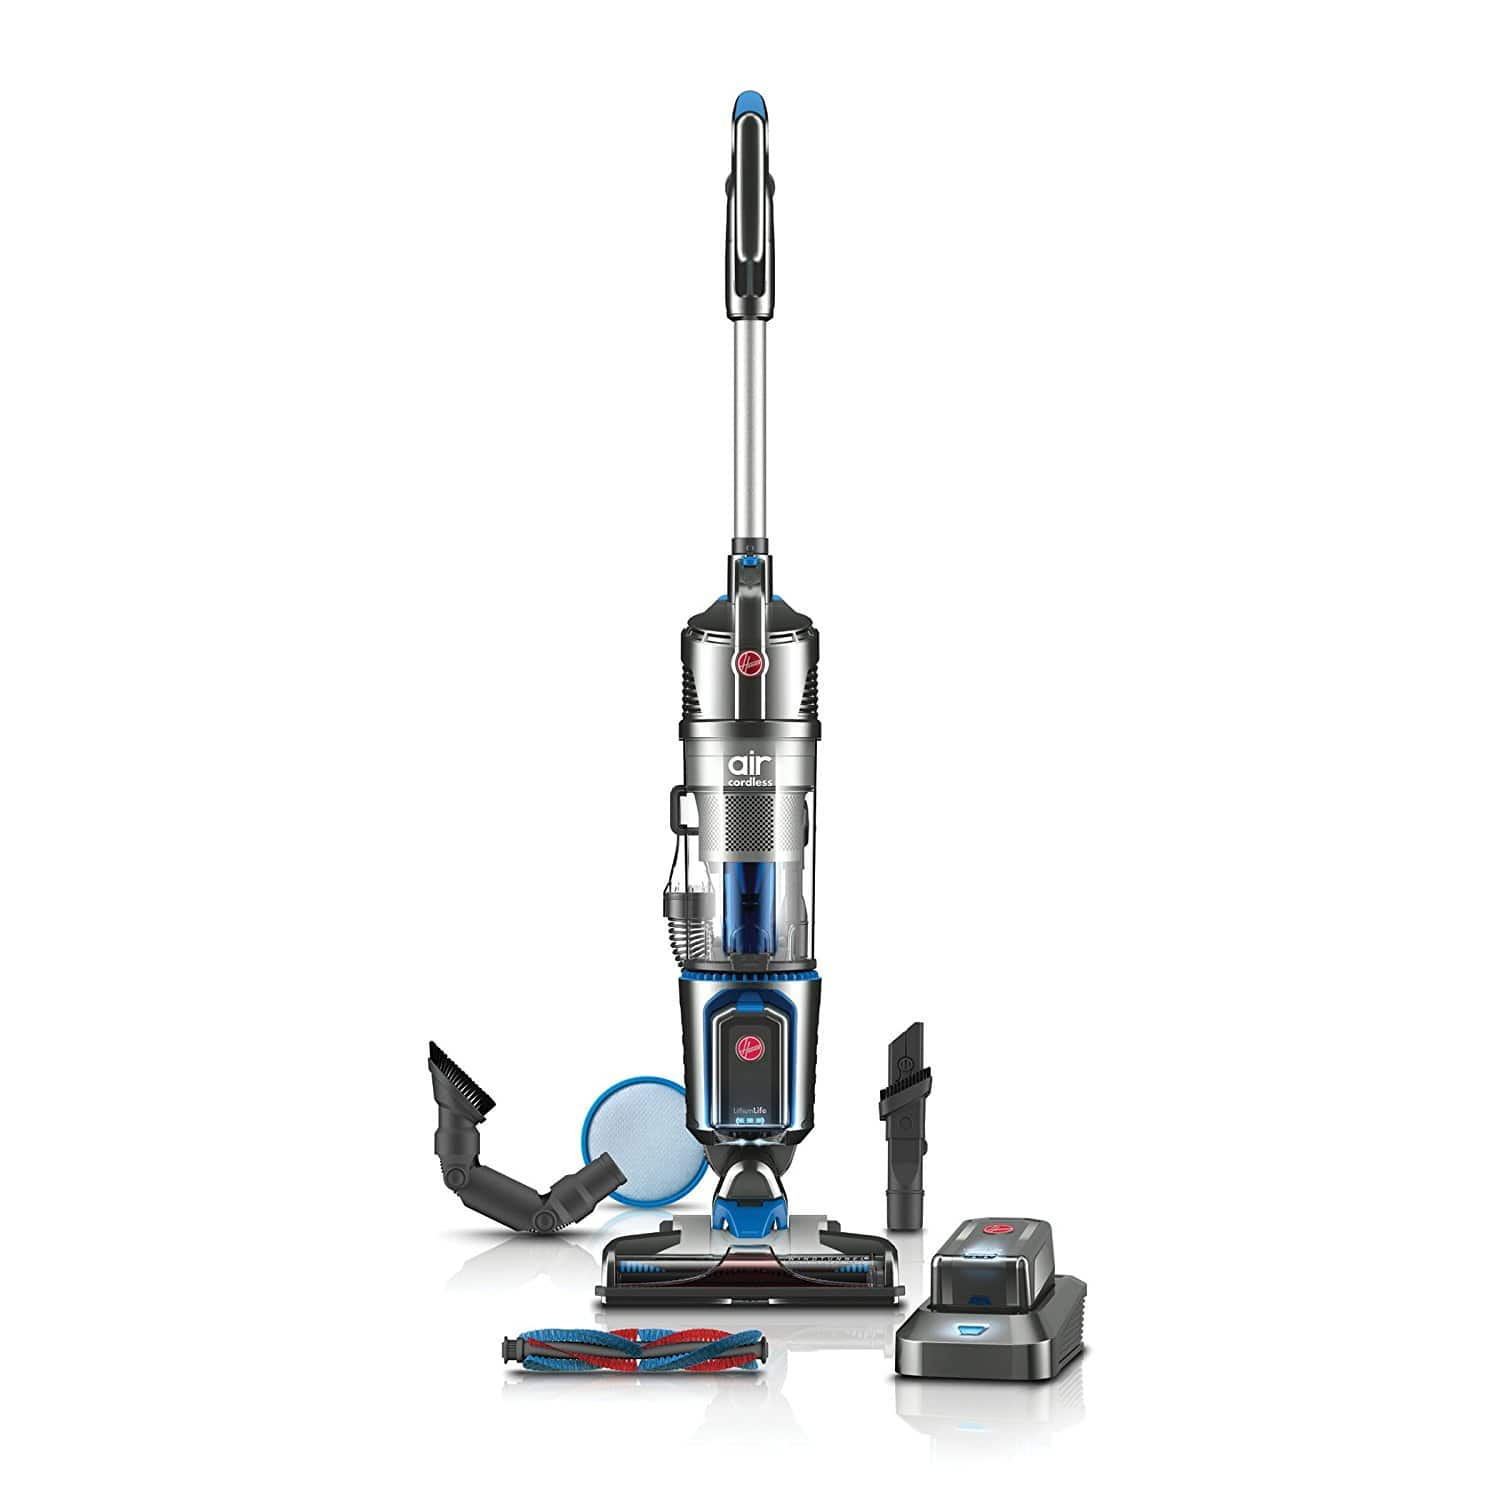 Hoover Air Cordless Series 20V Lithium Ion Bagless Upright Vacuum - $149.99 @Amazon